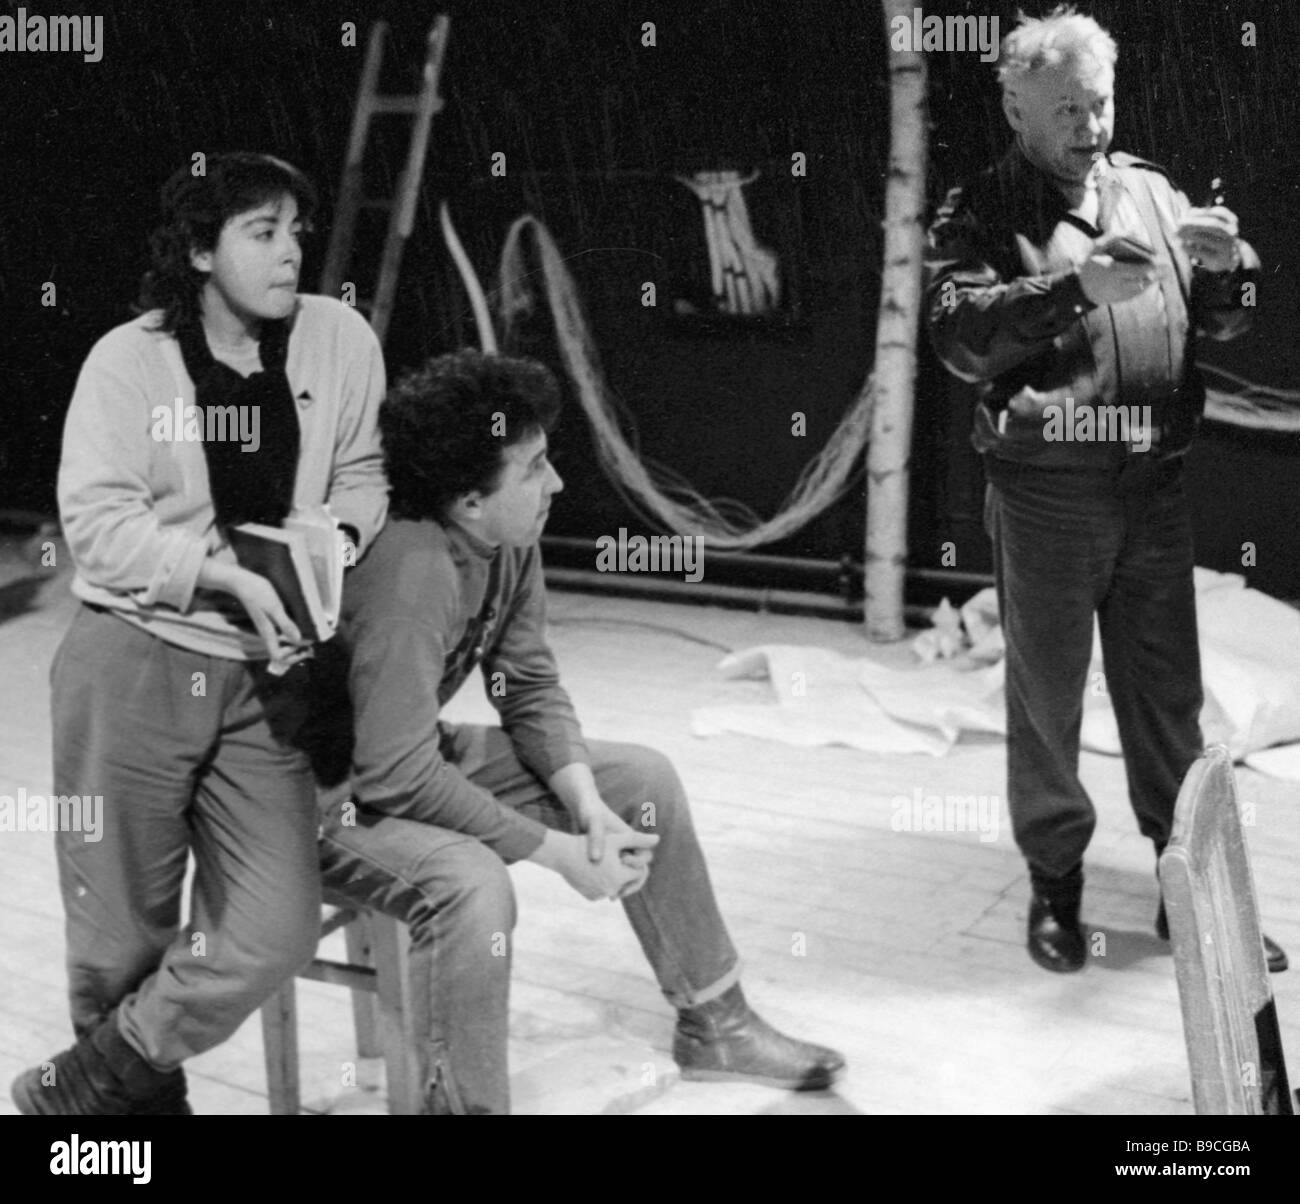 Oleg Tabakov right chief stage director of the Theater Studio on Chaplygina Street in rehearsal - Stock Image